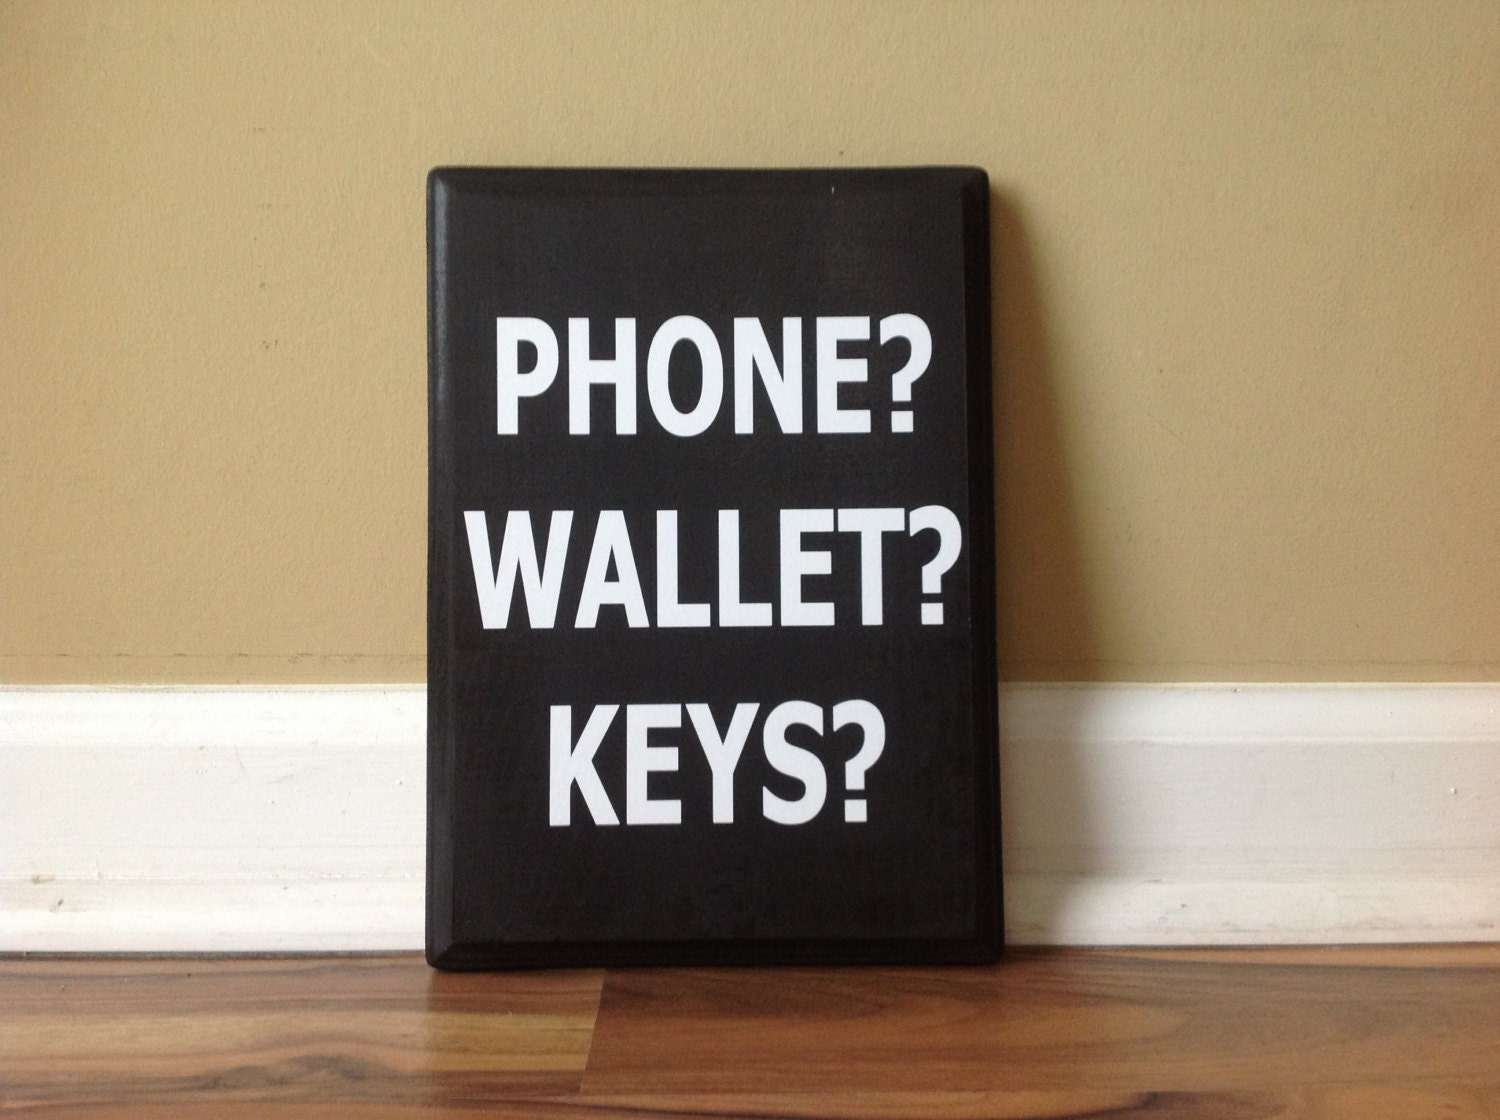 Phone Wallet Keys Front Door Reminder Don T Forget